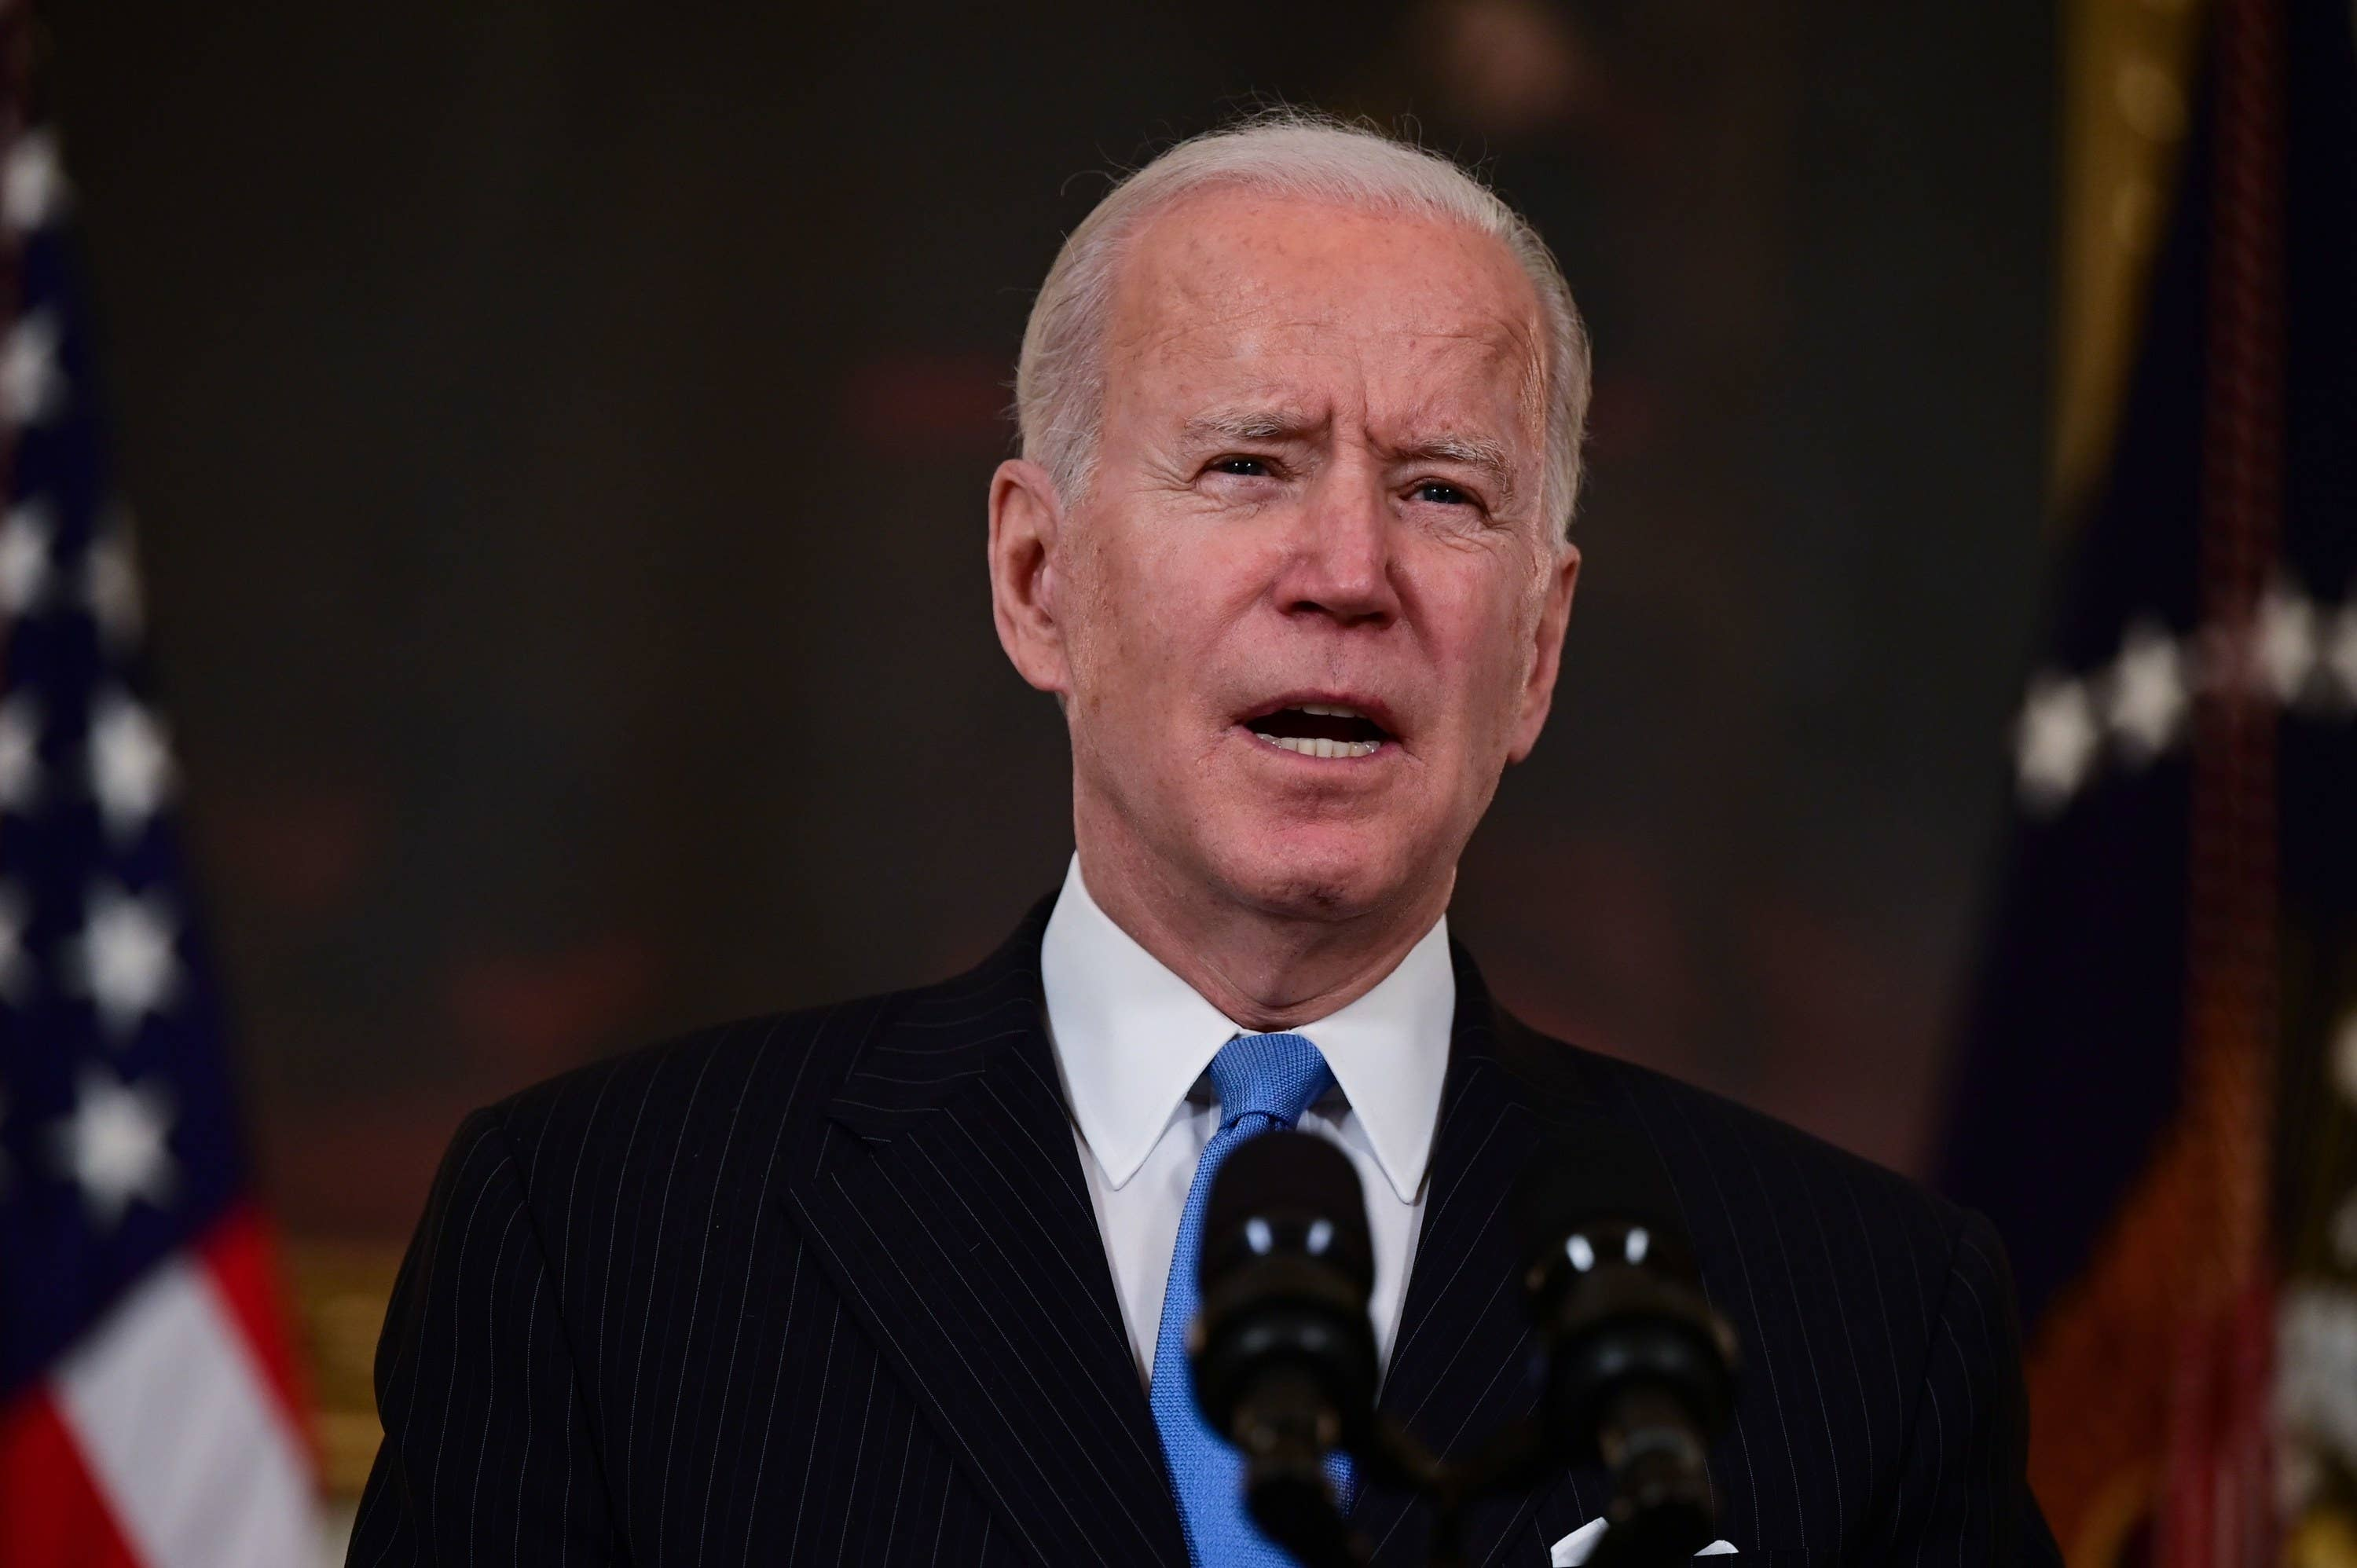 The US Will Have Enough COVID-19 Vaccines For All Adults By May, Biden Says